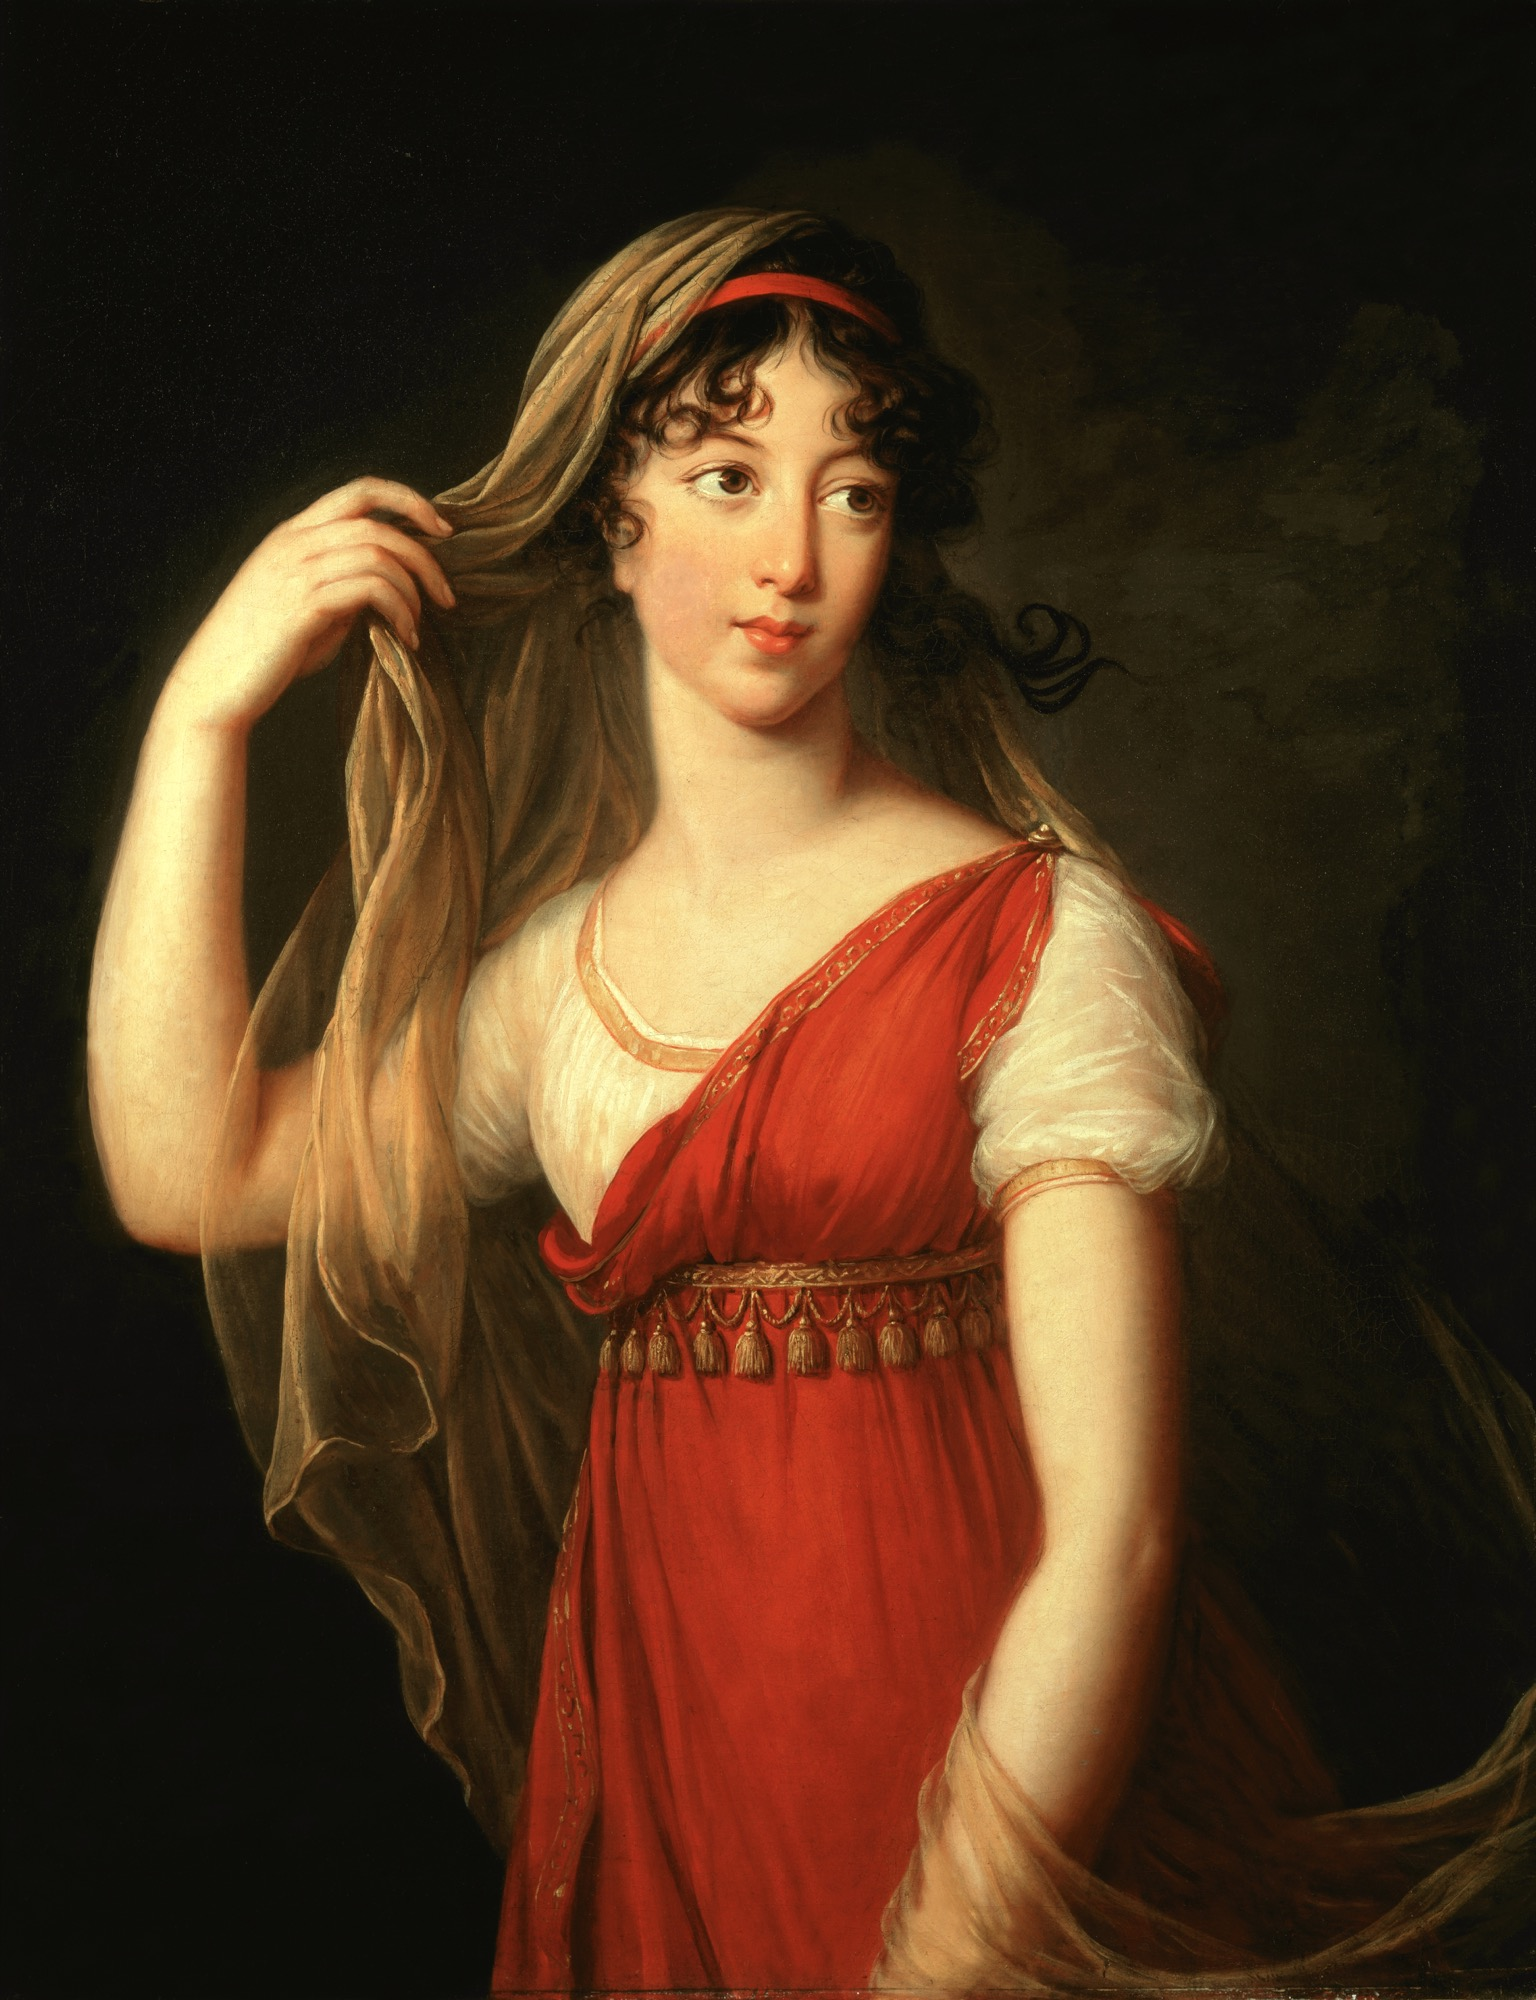 "Elisabeth Louise Vigée Le Brun, ""Portrait of a Young Lady, possibly Charlotte Dillon, with Red Stole and Veil,"" 1803, oil on canvas. Collection of Trish Turner and Thomas McConnell © Sotheby's / akg-images"